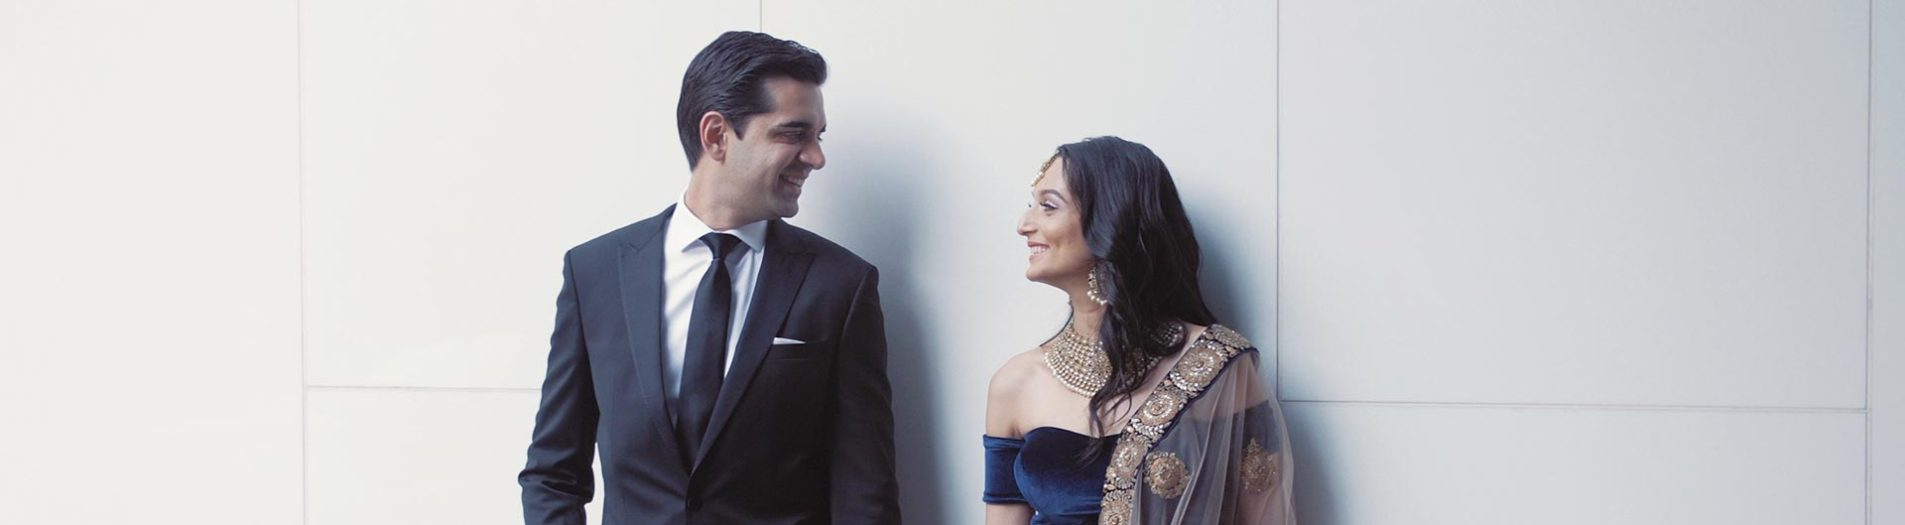 Elegant + Contemporary South Asian Wedding Film | Palais Royale & The Gardiner Museum Toronto | Amit + Mona